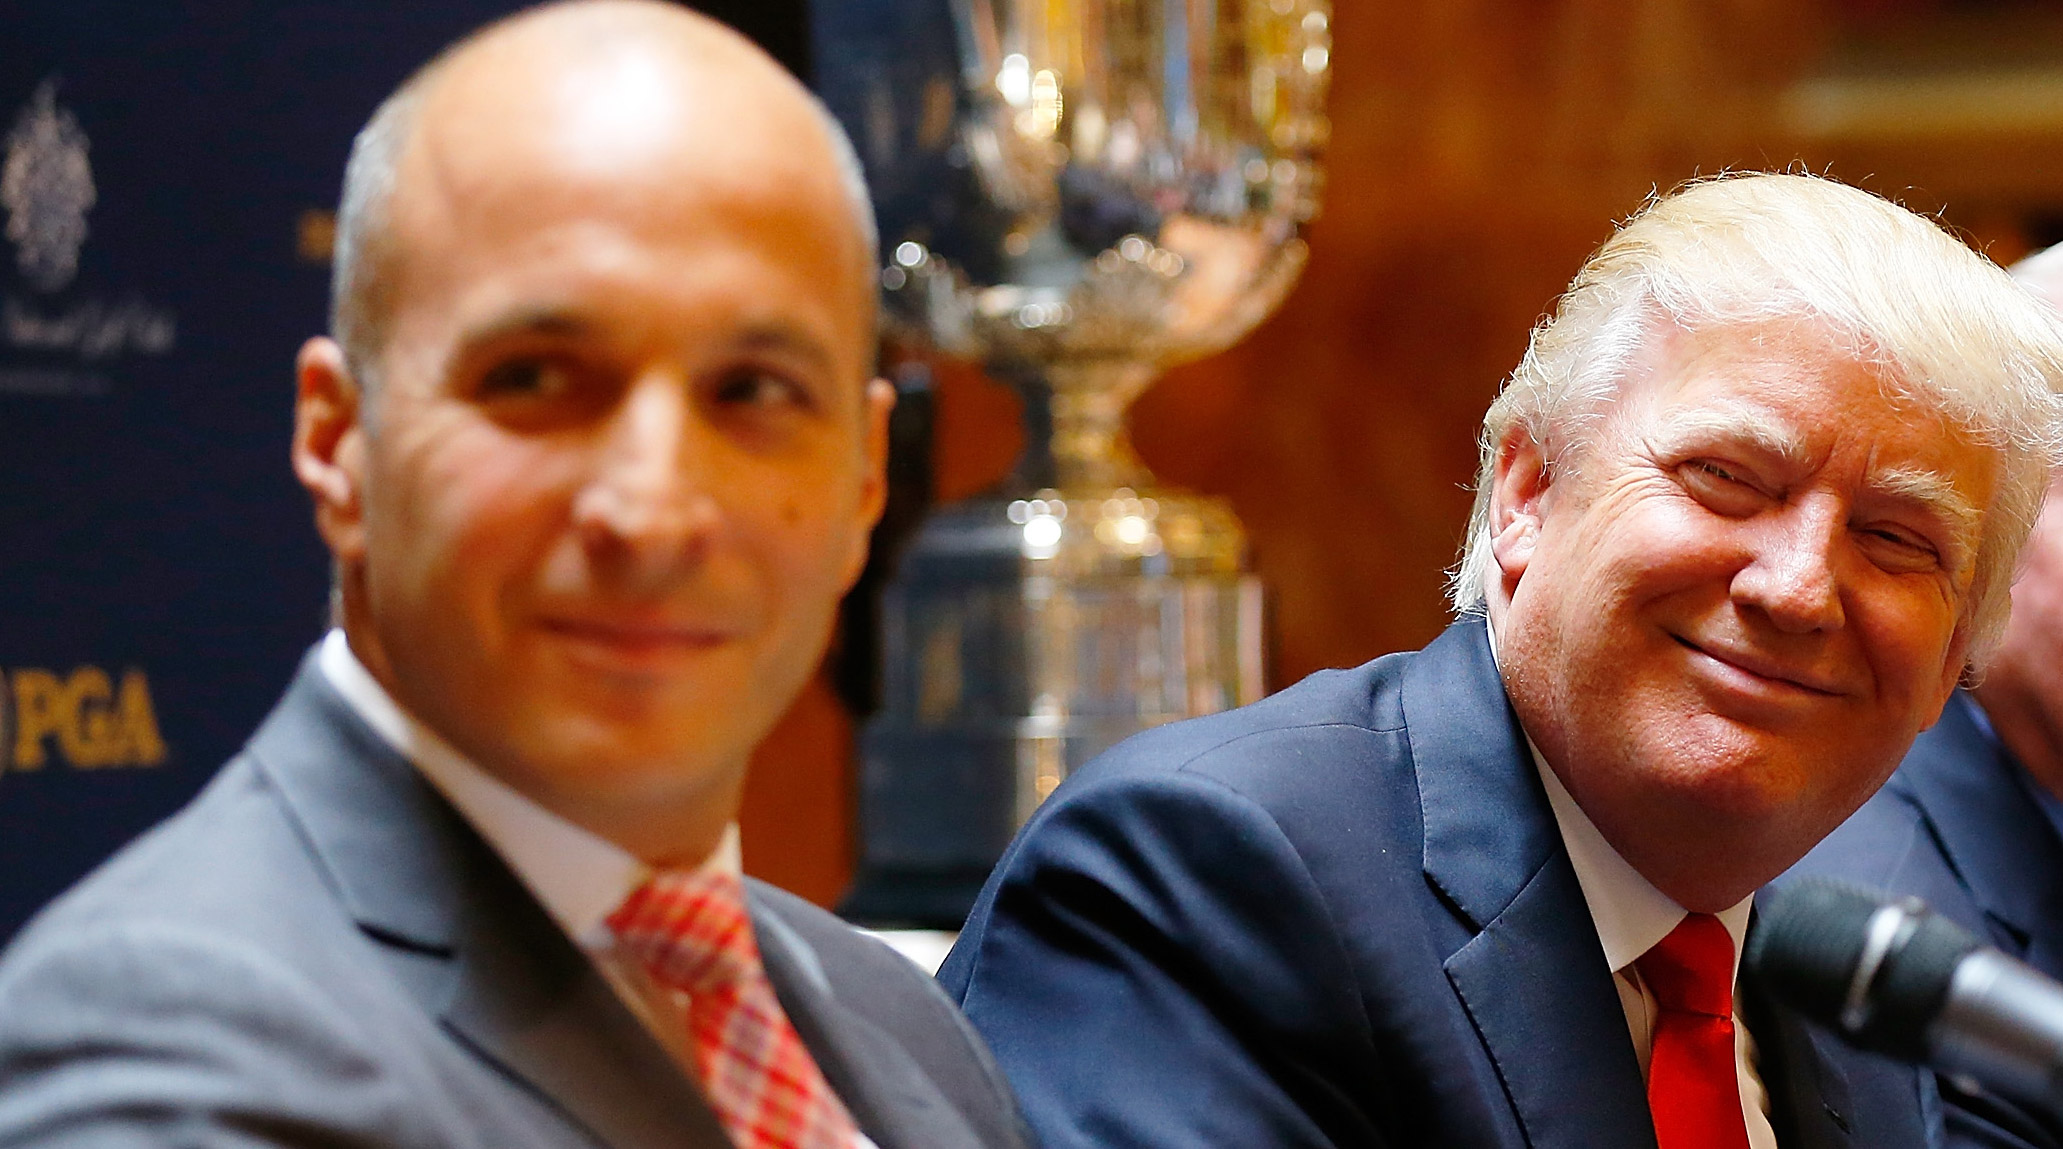 PGA of America CEO Pete Bevacqua and Donald Trump at a May 2014 press conference.